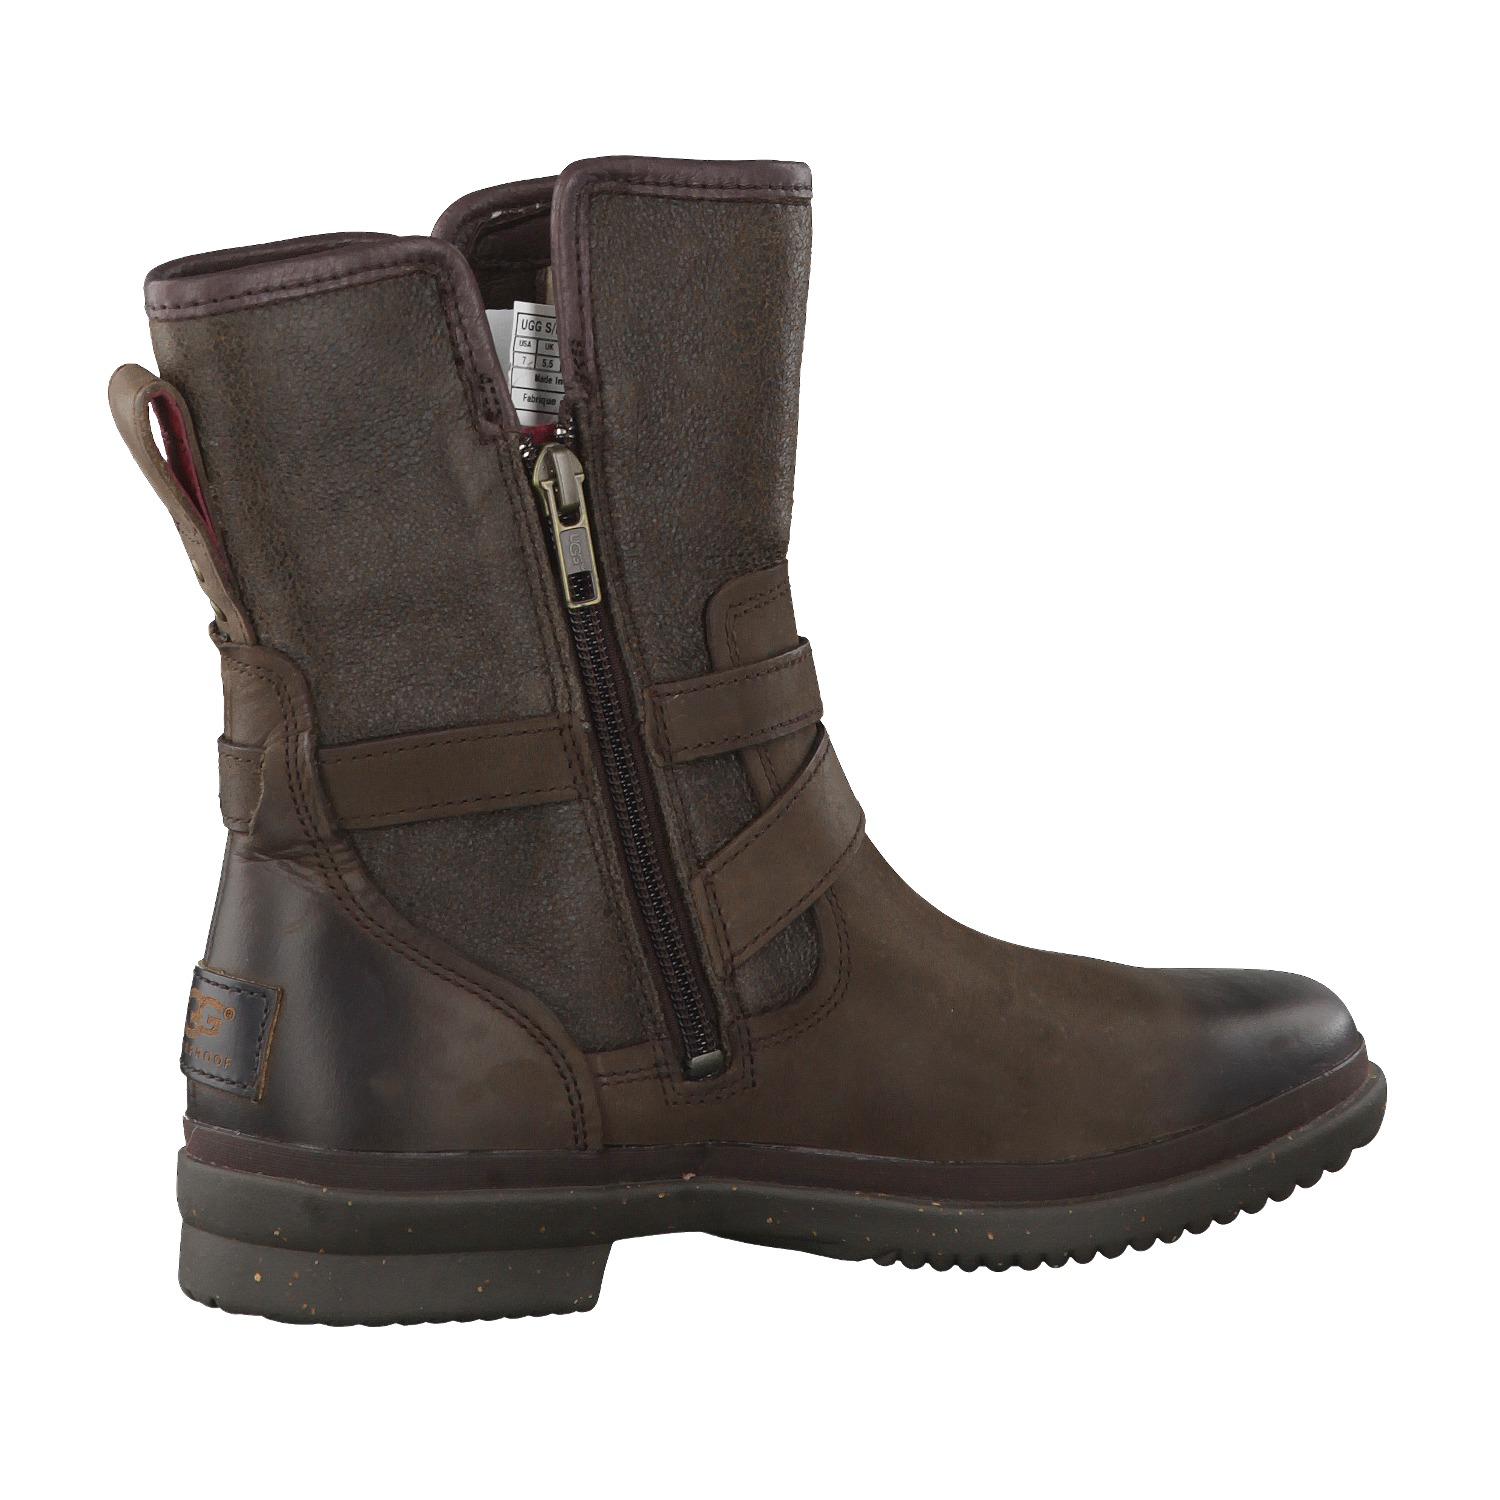 ugg boots sale uk ebay